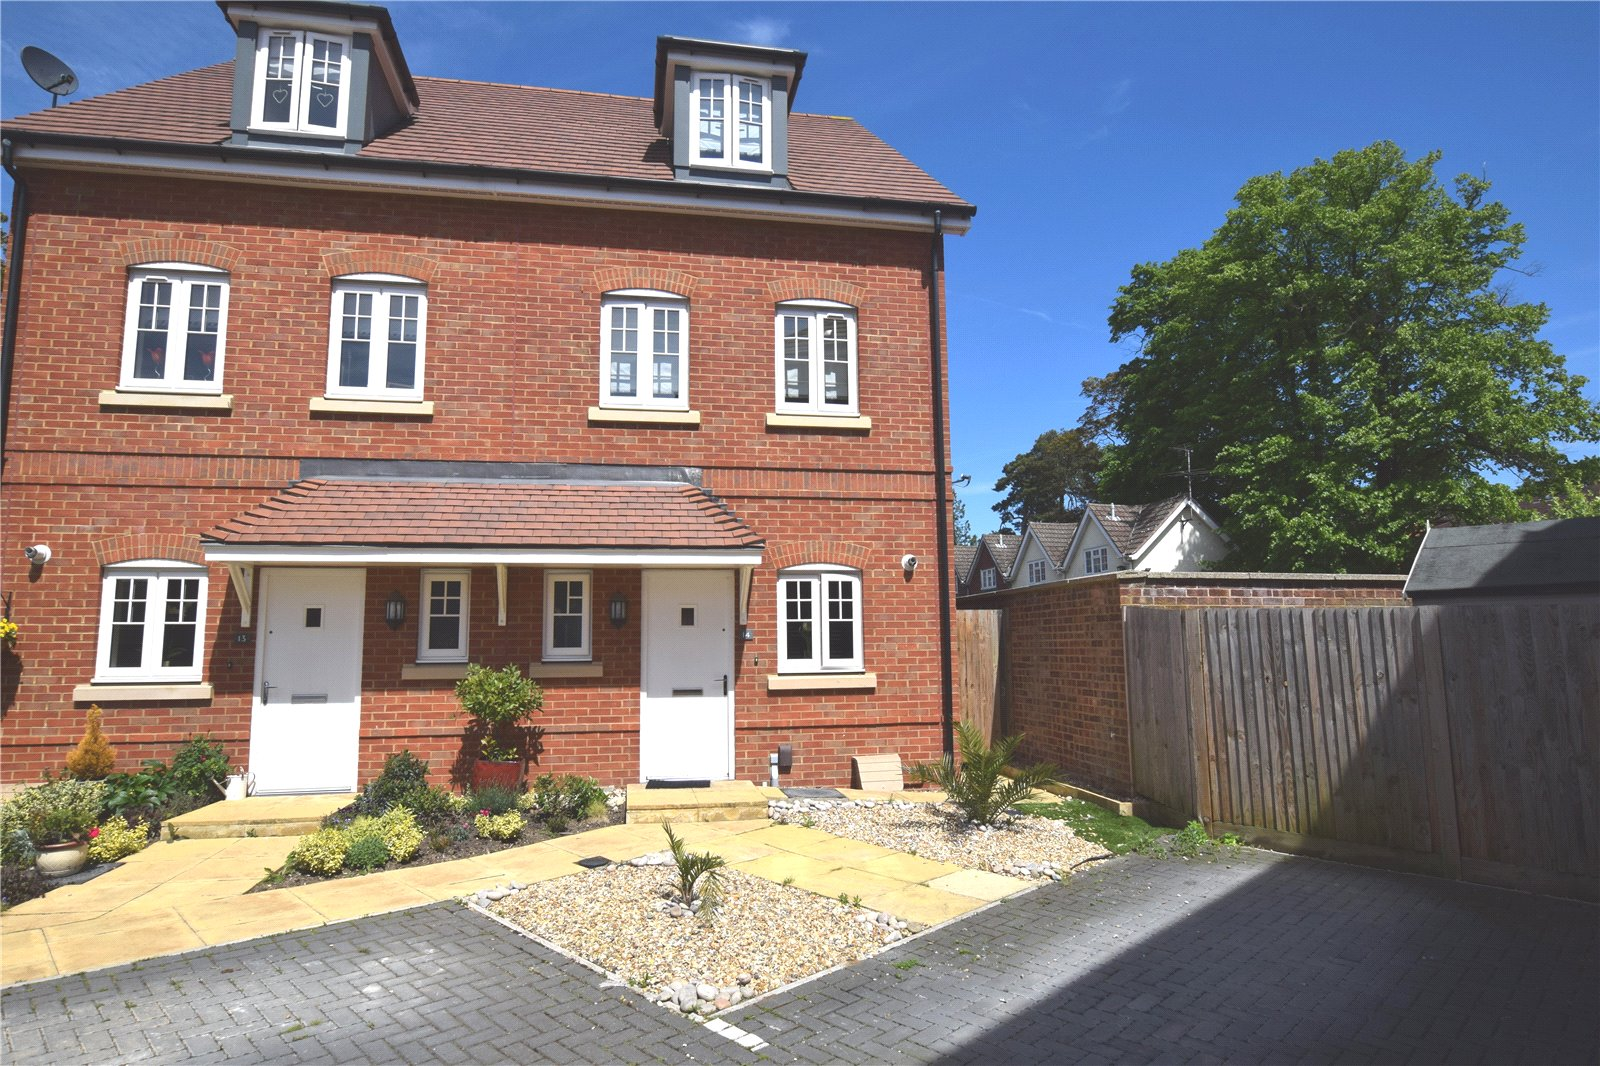 3 Bedrooms Semi Detached House for sale in Hoskins Court, Blenheim Place, Camberley, Surrey, GU15